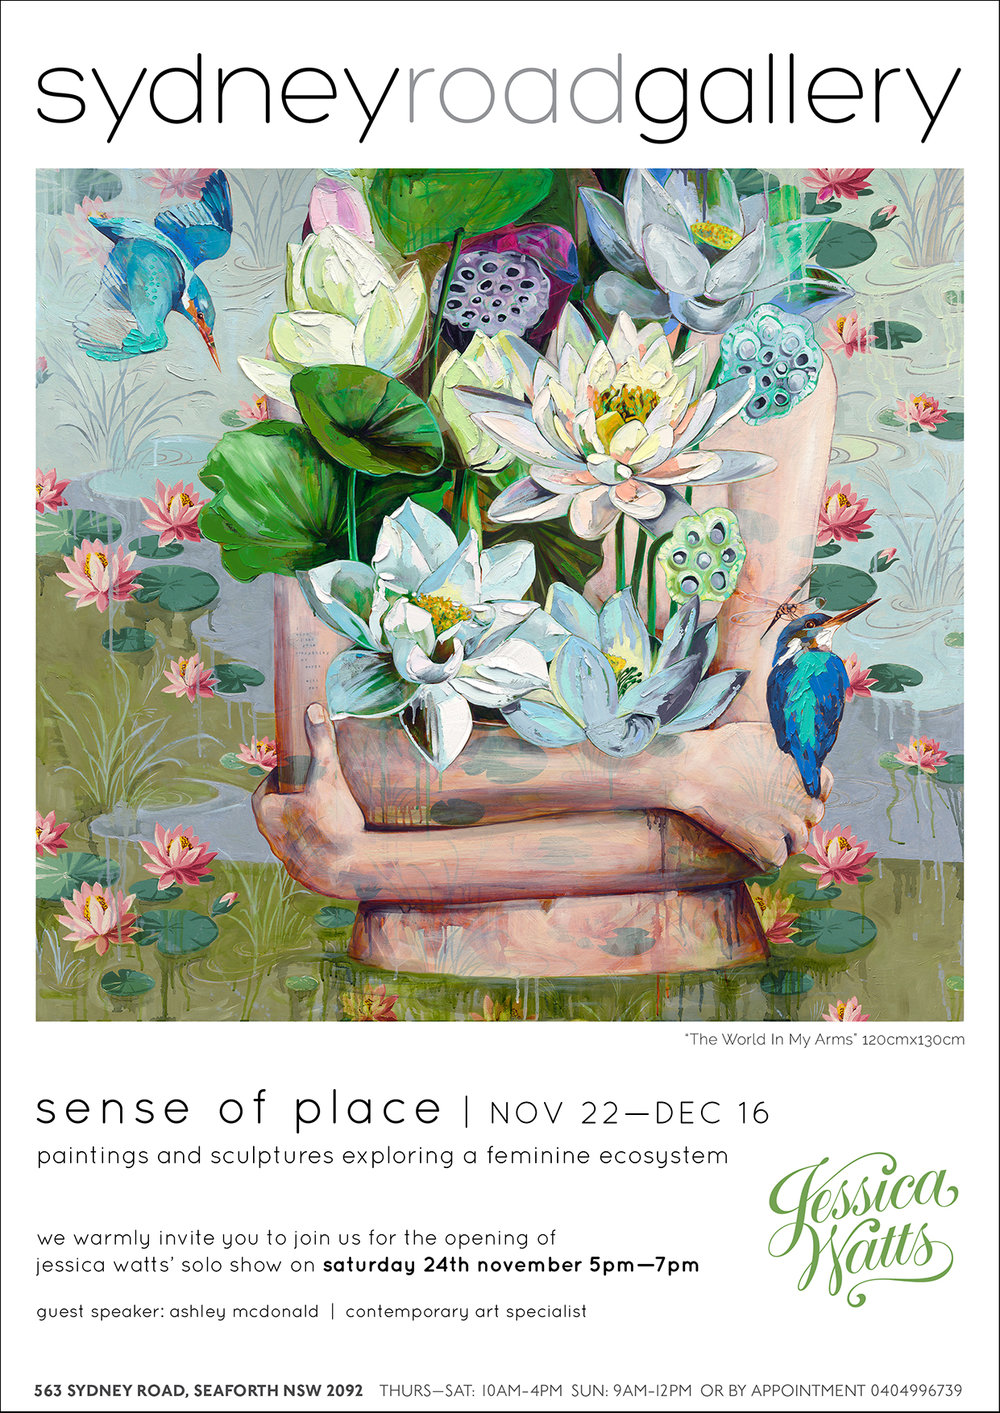 A SENSE OF PLACE - A Solo ShowJessica WattsWhen: 22nd November - 16th December 2018Times: Thursday - Saturday 10am - 4pm & Sunday 9am - 12pmLocation: Sydney Road Gallery, 563 Sydney Road, Seaforth, NSW, 2092Catalogue